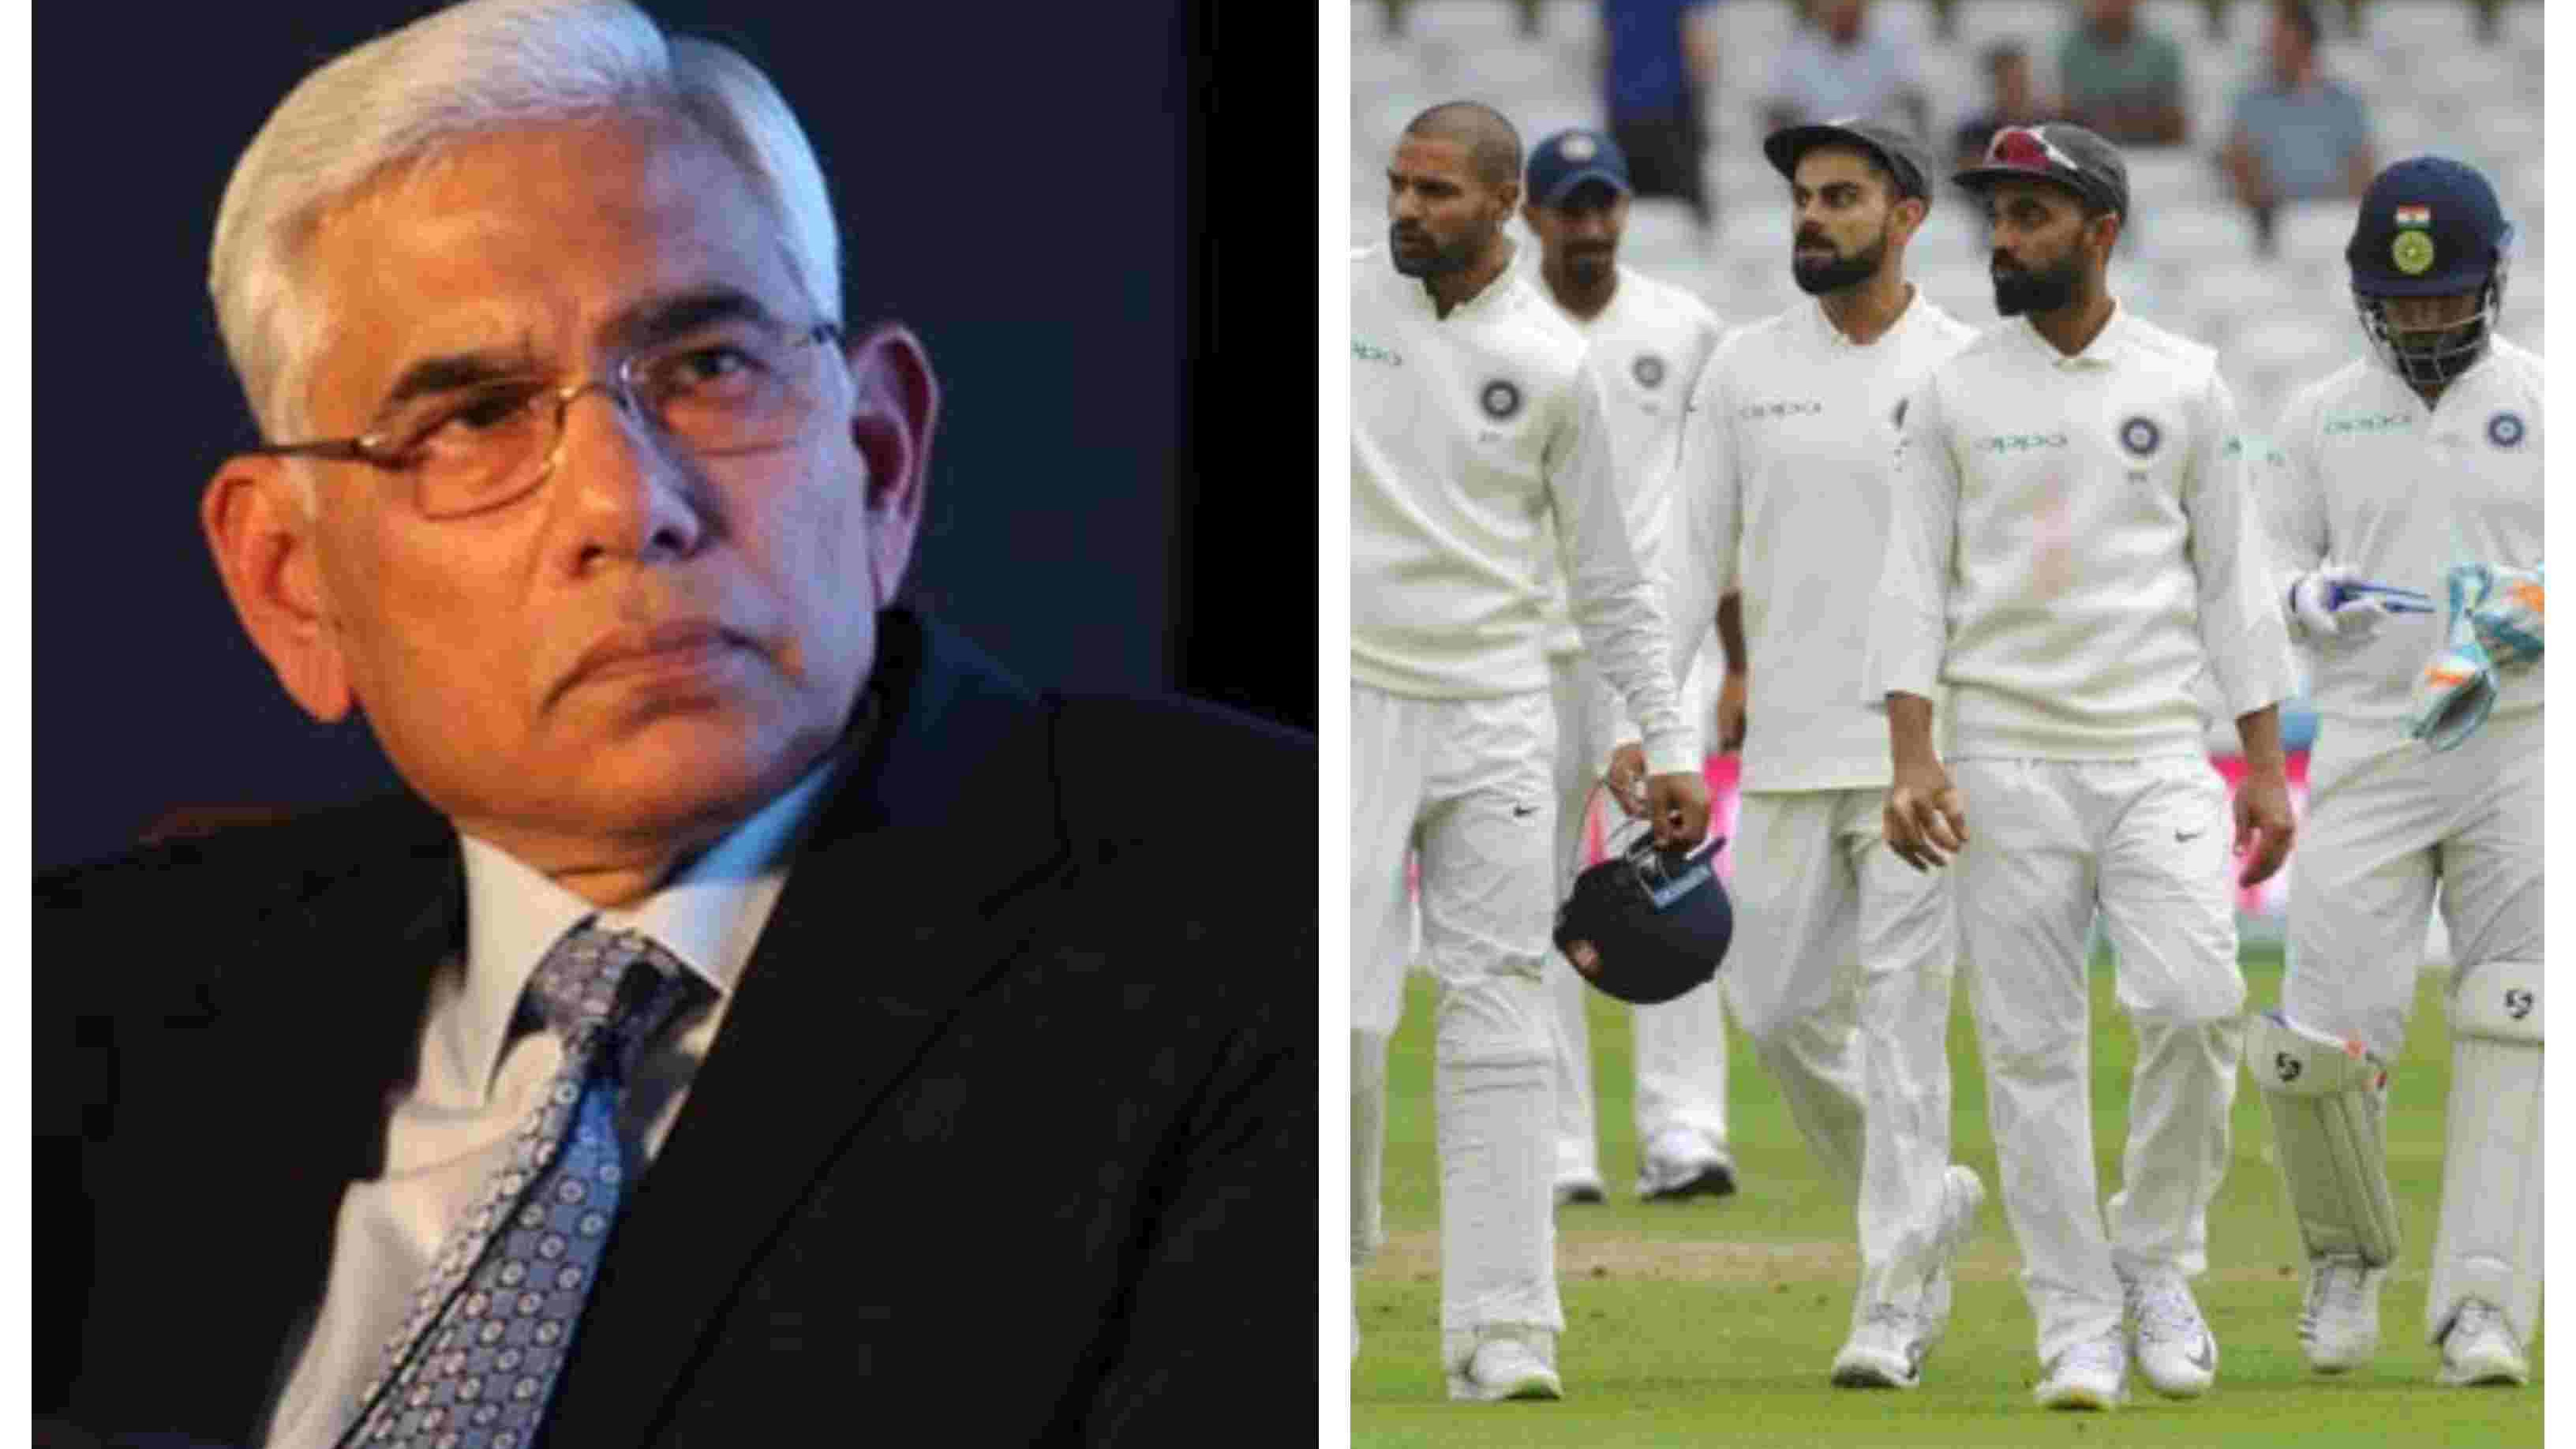 ENG v IND 2018: Indian players' performance will be reviewed after team manager submits report, confirms Vinod Rai